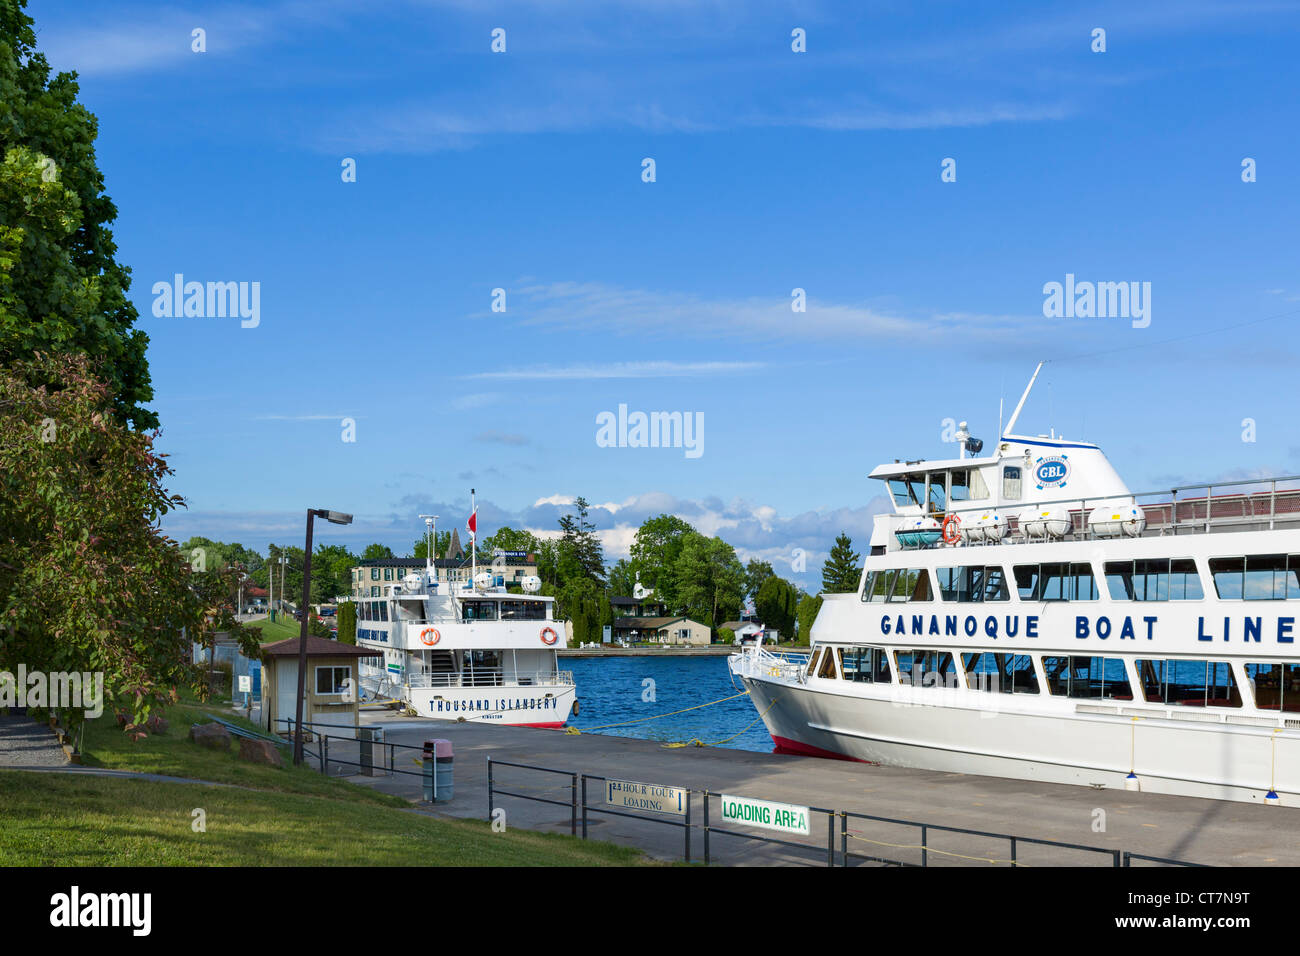 Tour boats for the Thousand Islands at the harbour in Gananoque, Lake Ontario, Ontario, Canada - Stock Image